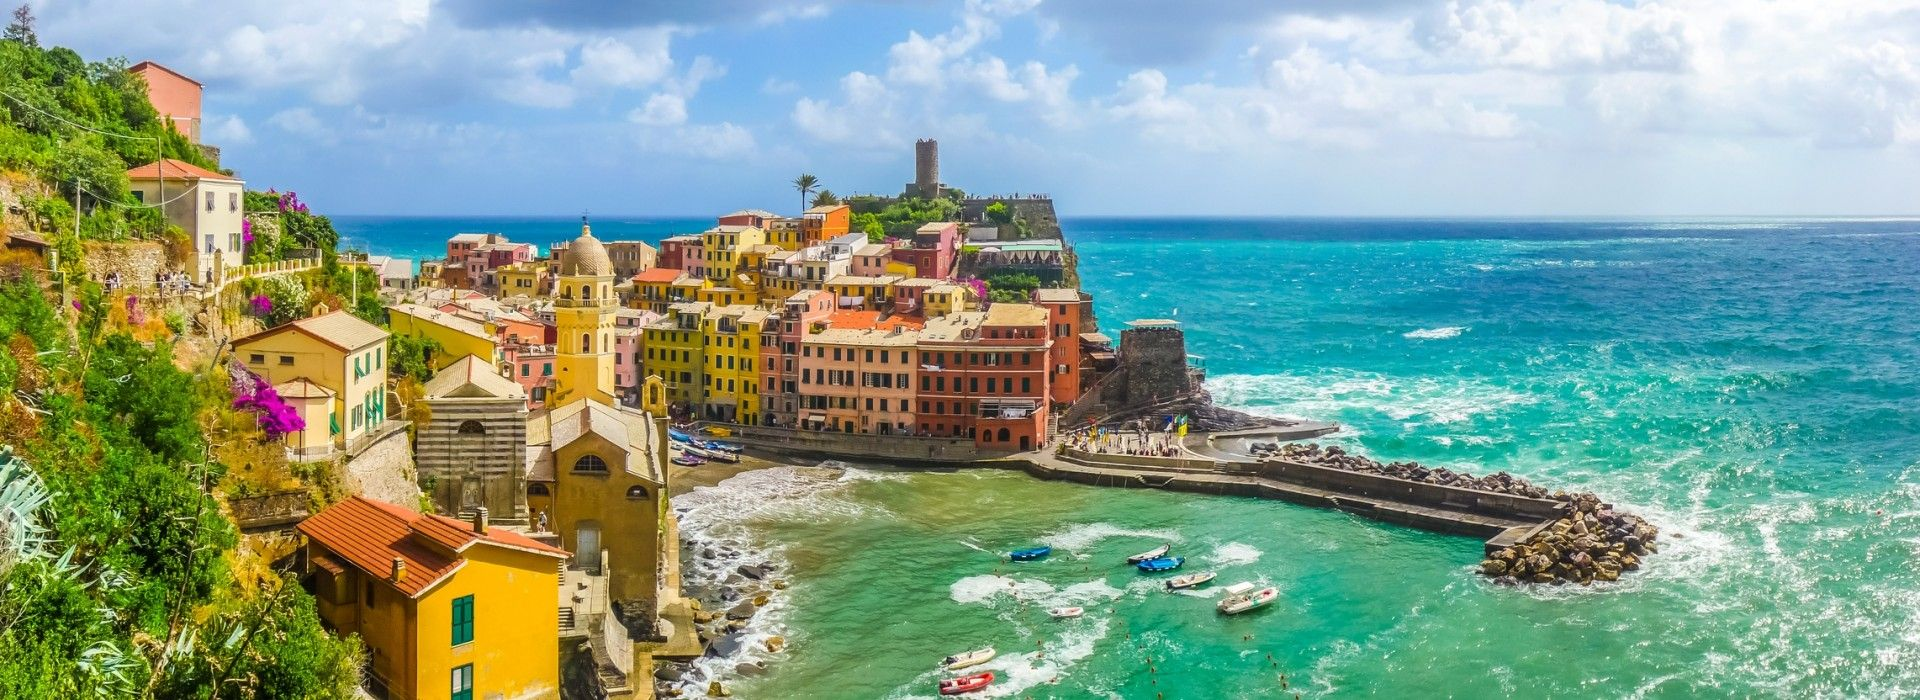 Sightseeing, attractions, culture and history Tours in Cinque Terre and Liguria